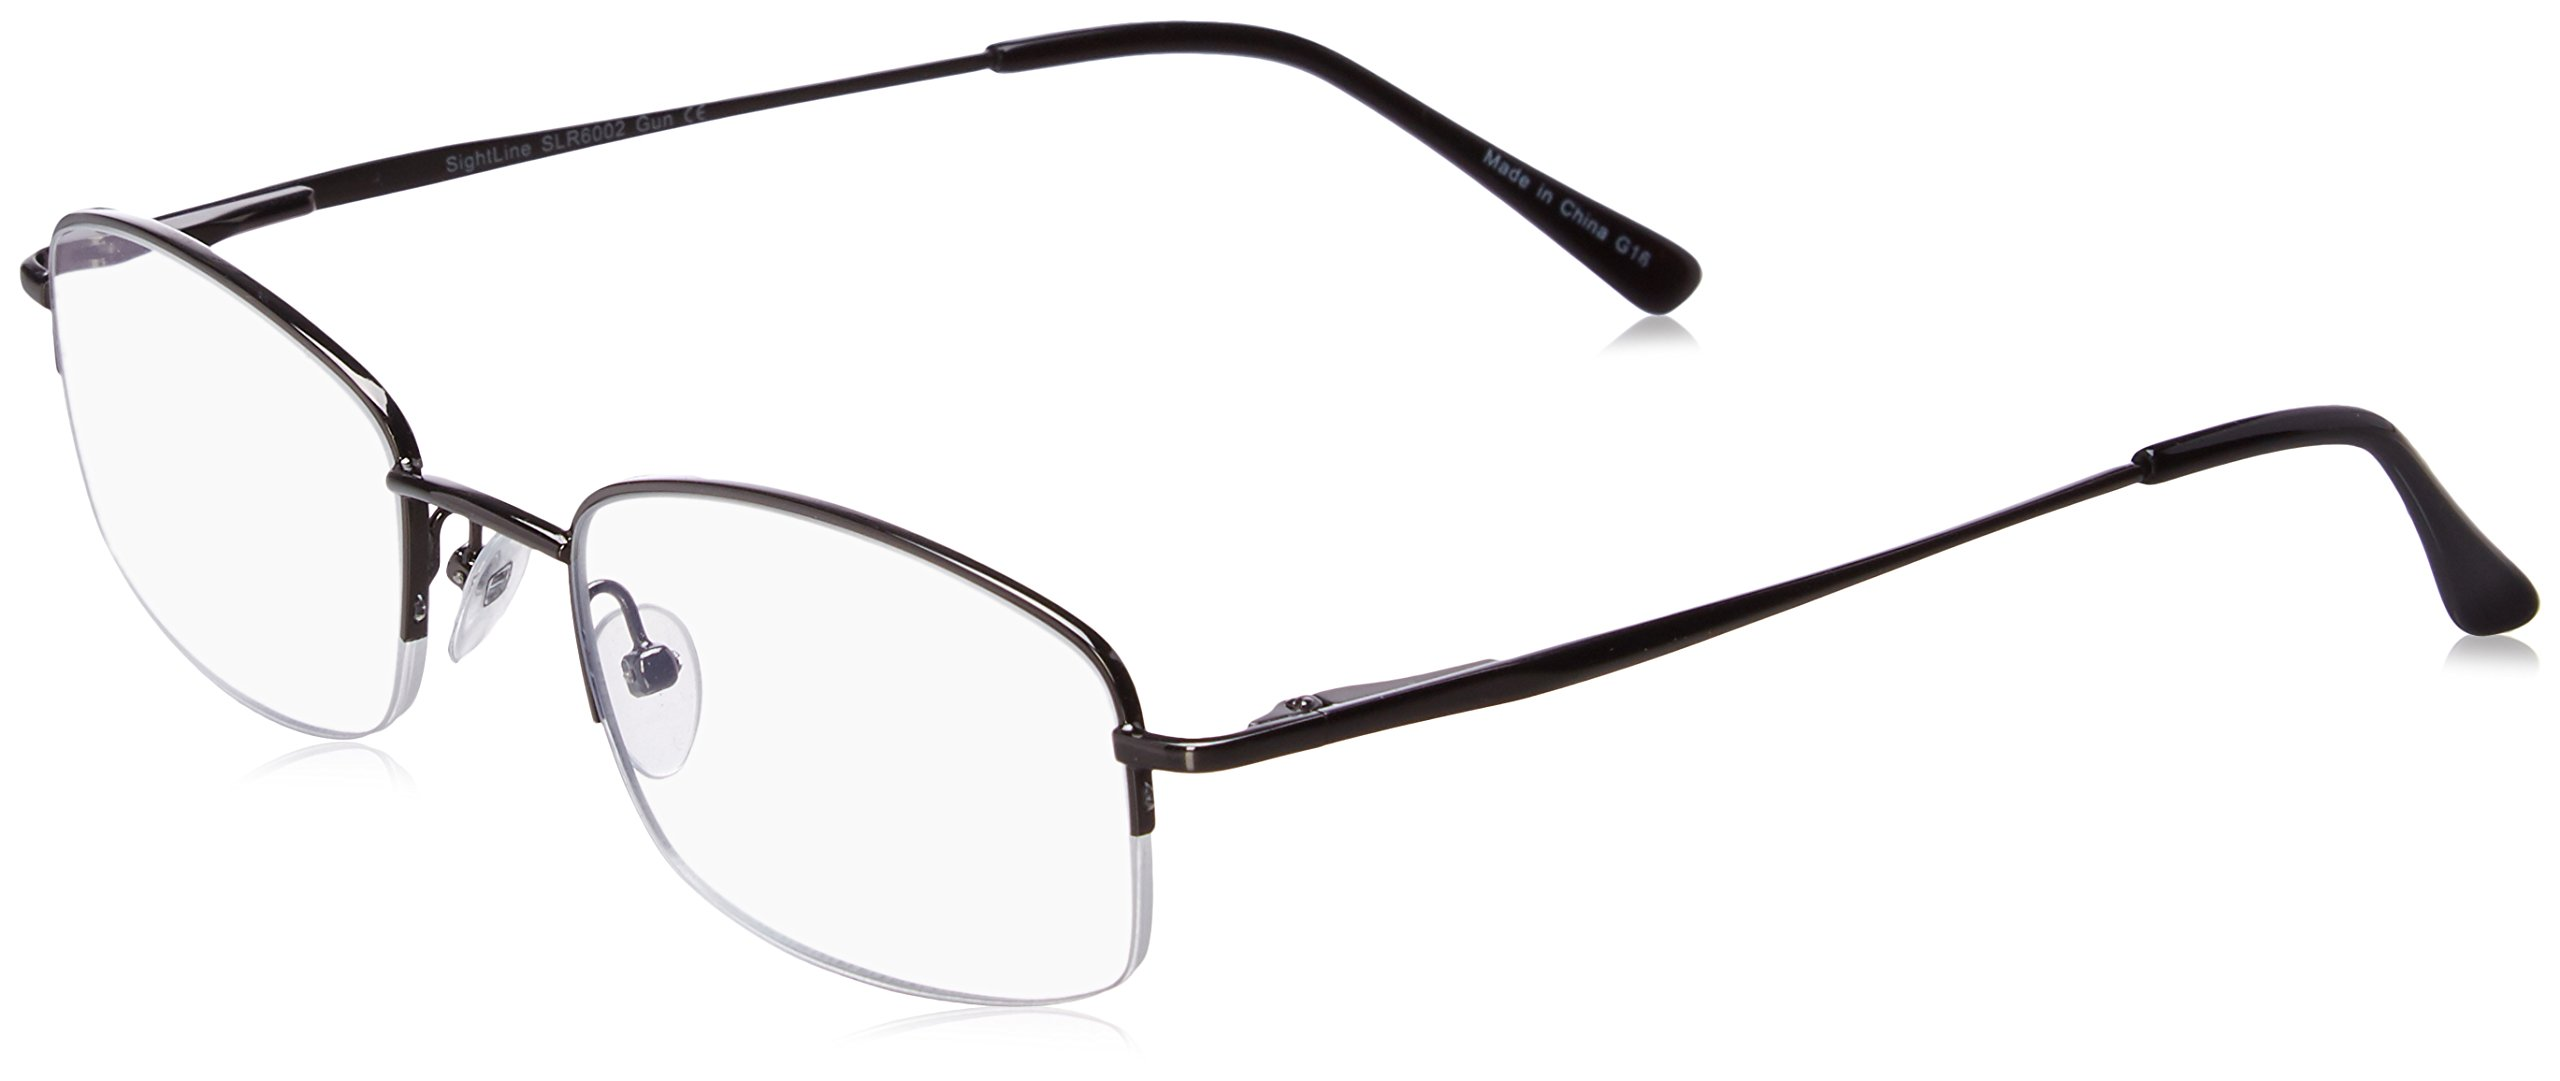 2f7f24f63e Amazon.com  SightLine Multifocal Computer Reading Glasses 6002 Semi-Rimless Designer  Frames (2.00